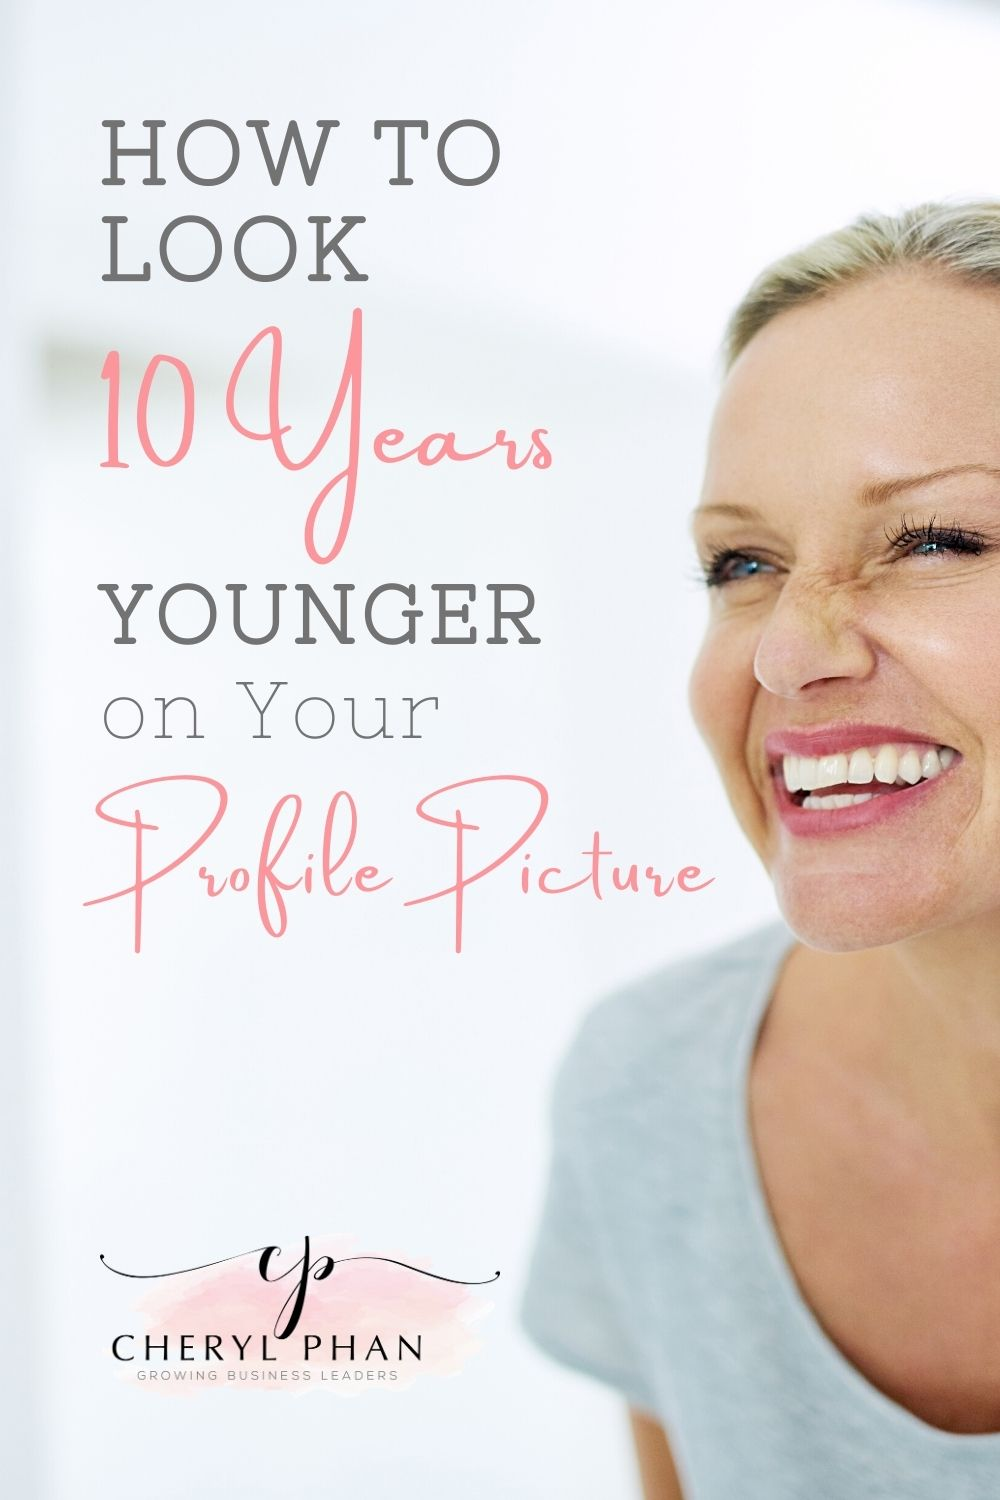 How to look 10 years younger in your photos